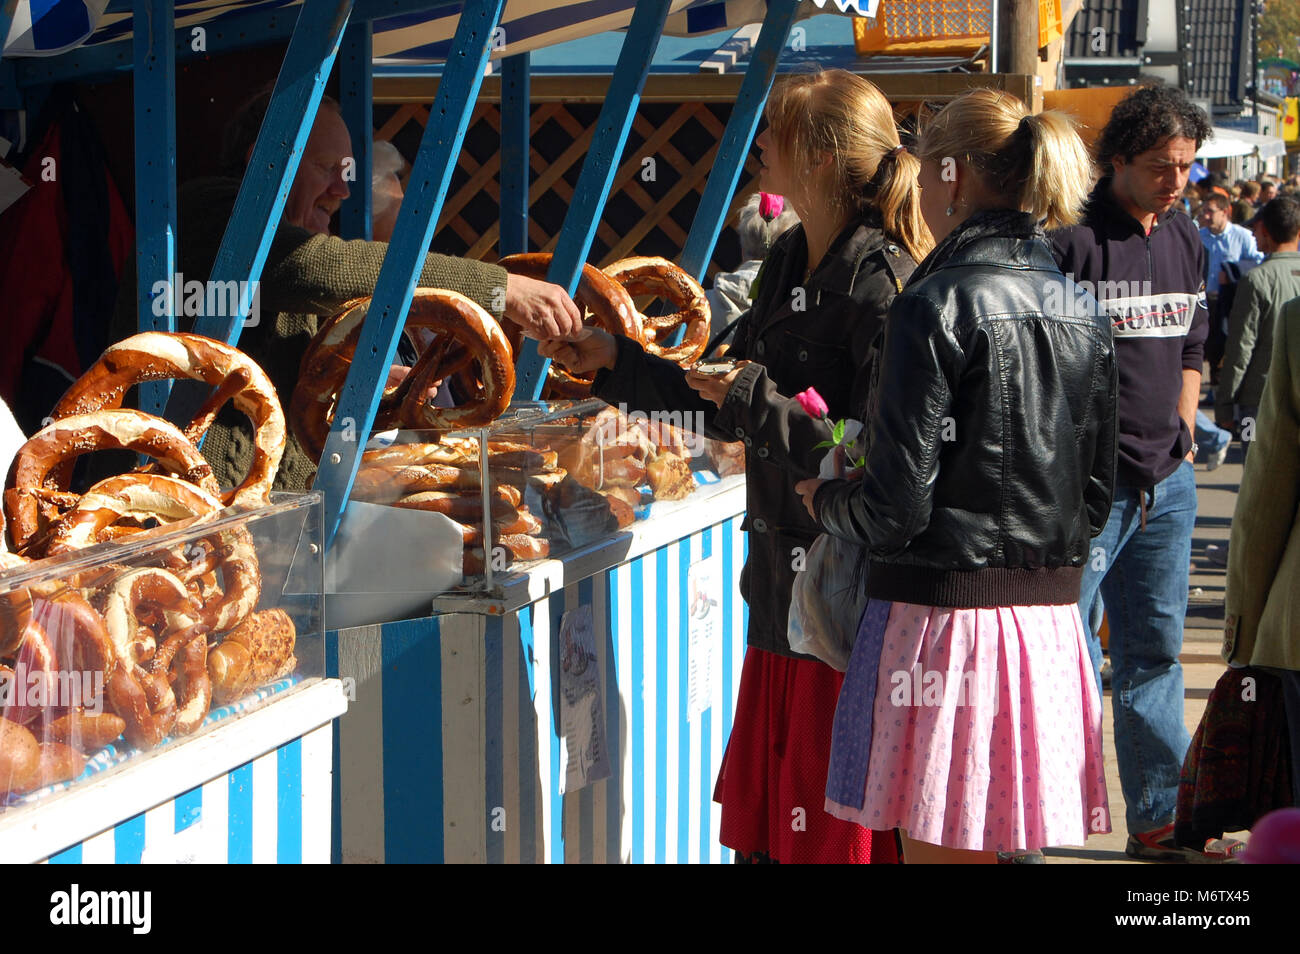 Two people buying brezen or pretzels at a stall at the Oktoberfest in the city of Munich in Germany - Stock Image